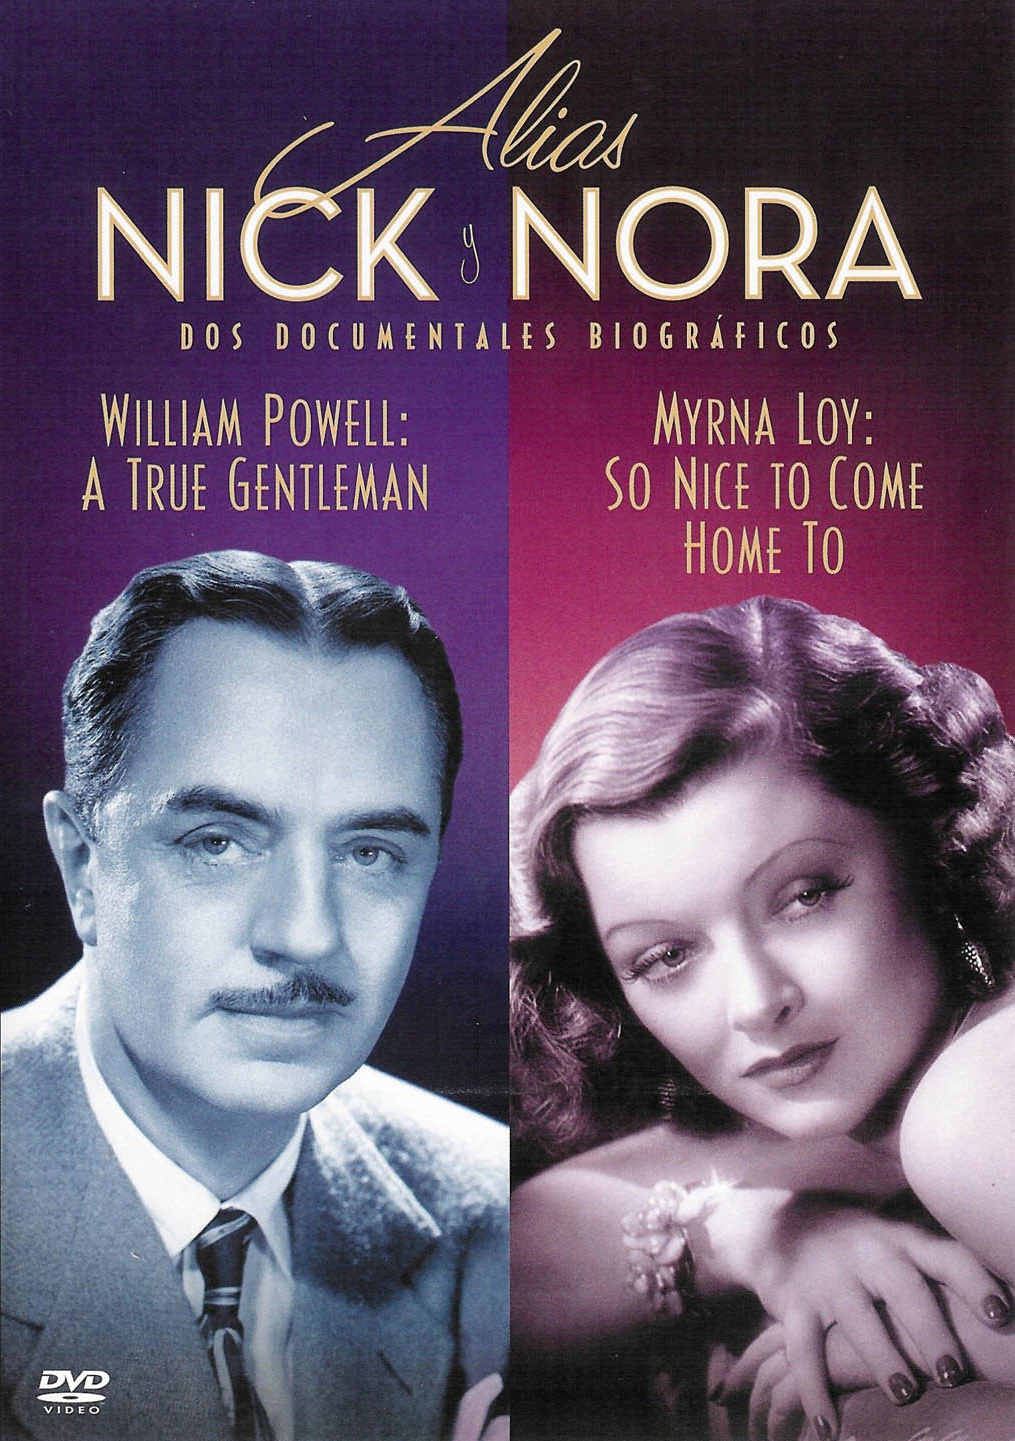 Image result for myrna loy so nice to come home to